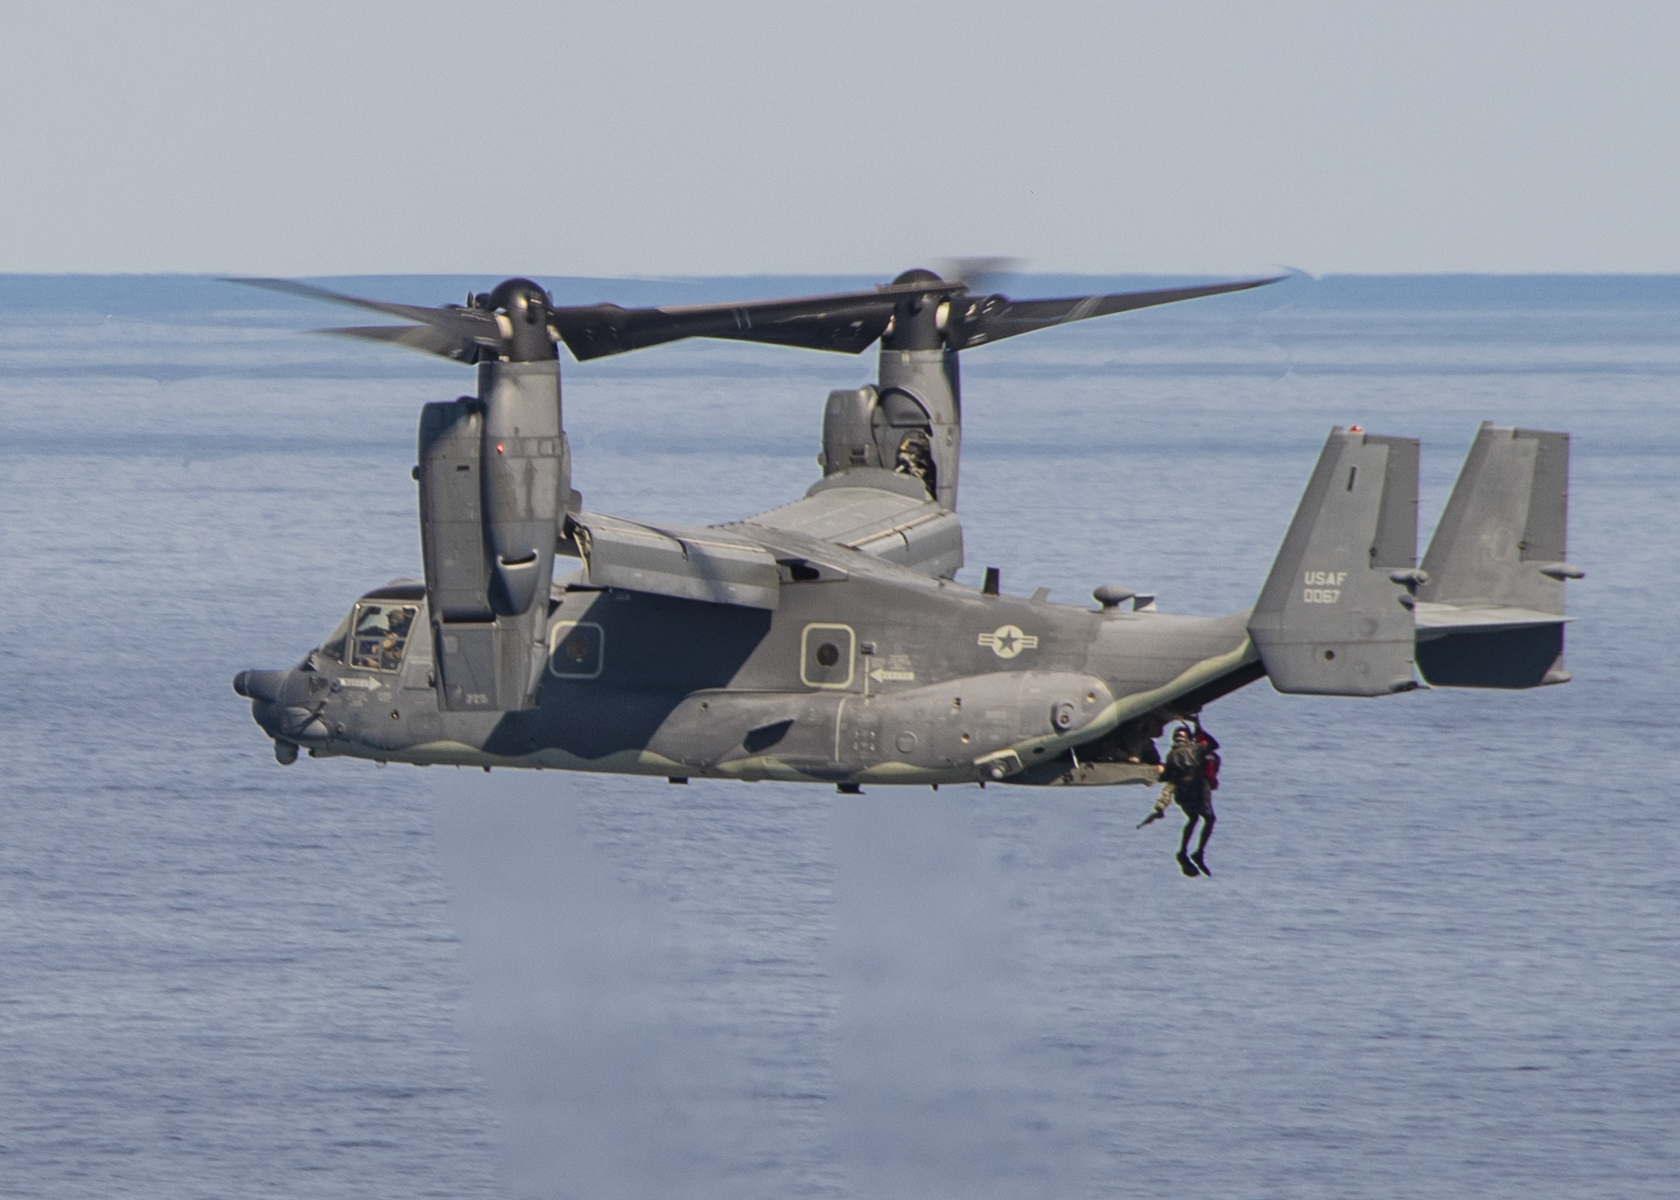 A U.S. Air Force CV-22 Osprey, attached to the 21st Special Operations Squadron operating out of Yokota Air Base, Japan, conducts a search-and-rescue exercise in conjunction with the aircraft carrier USS Ronald Reagan (CVN 76) during Keen Sword 21 on Oct. 28, 2020, in the Philippine Sea. (MC2 Erica Bechard/Navy)